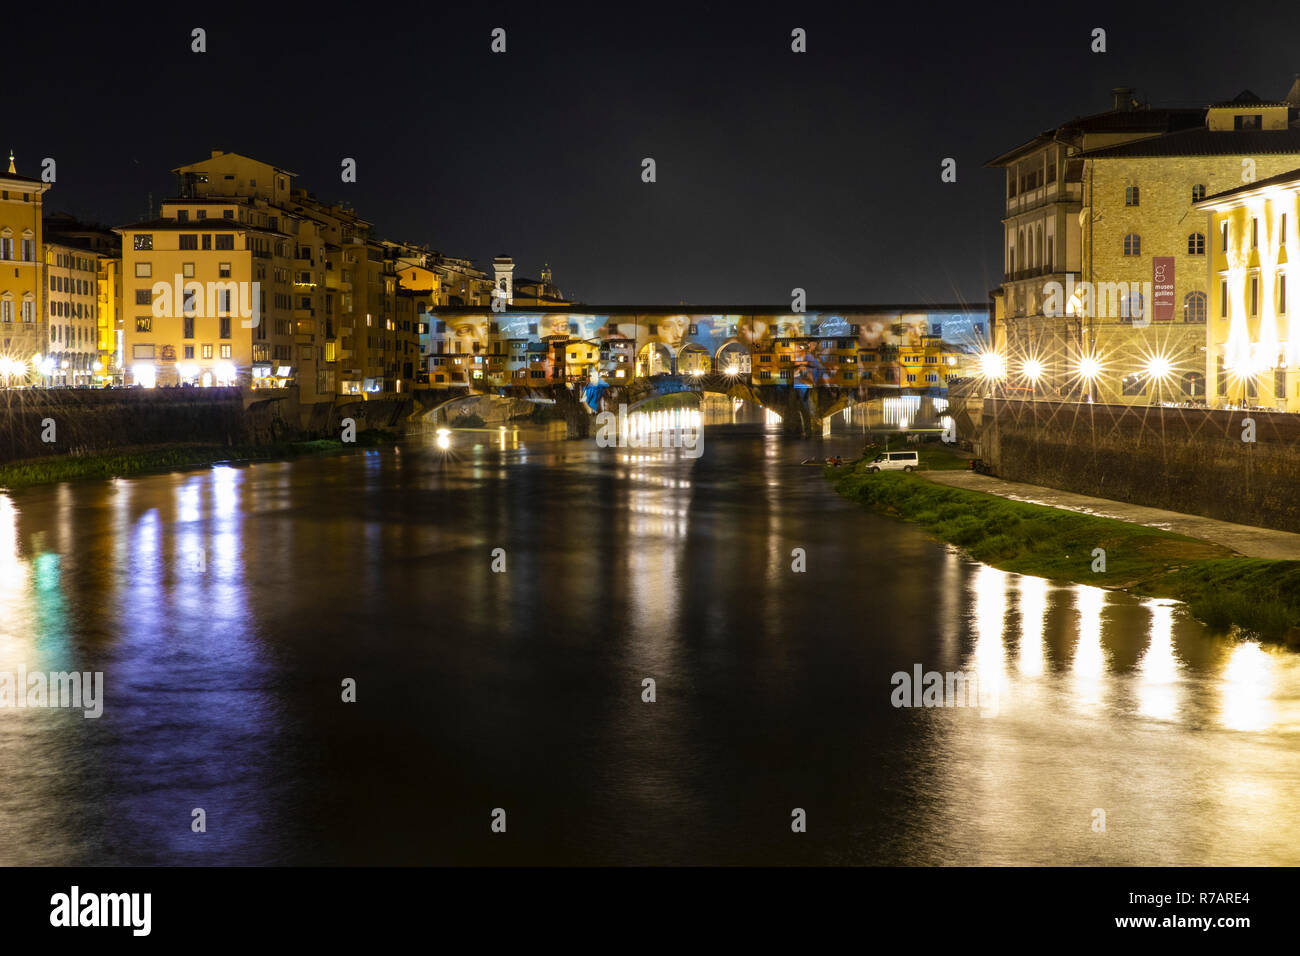 Florence, Italy. 8th Dec 2018. .Today the Christmas lights are lit in Florence. The Ponte Vecchio in Florence is illuminated by a videomapping that projects the genius of Leonardo da Vinci transforming the bridge into a lightshow .Florence 8th Dicember © Michela Goretti /  Alamy Live News Stock Photo